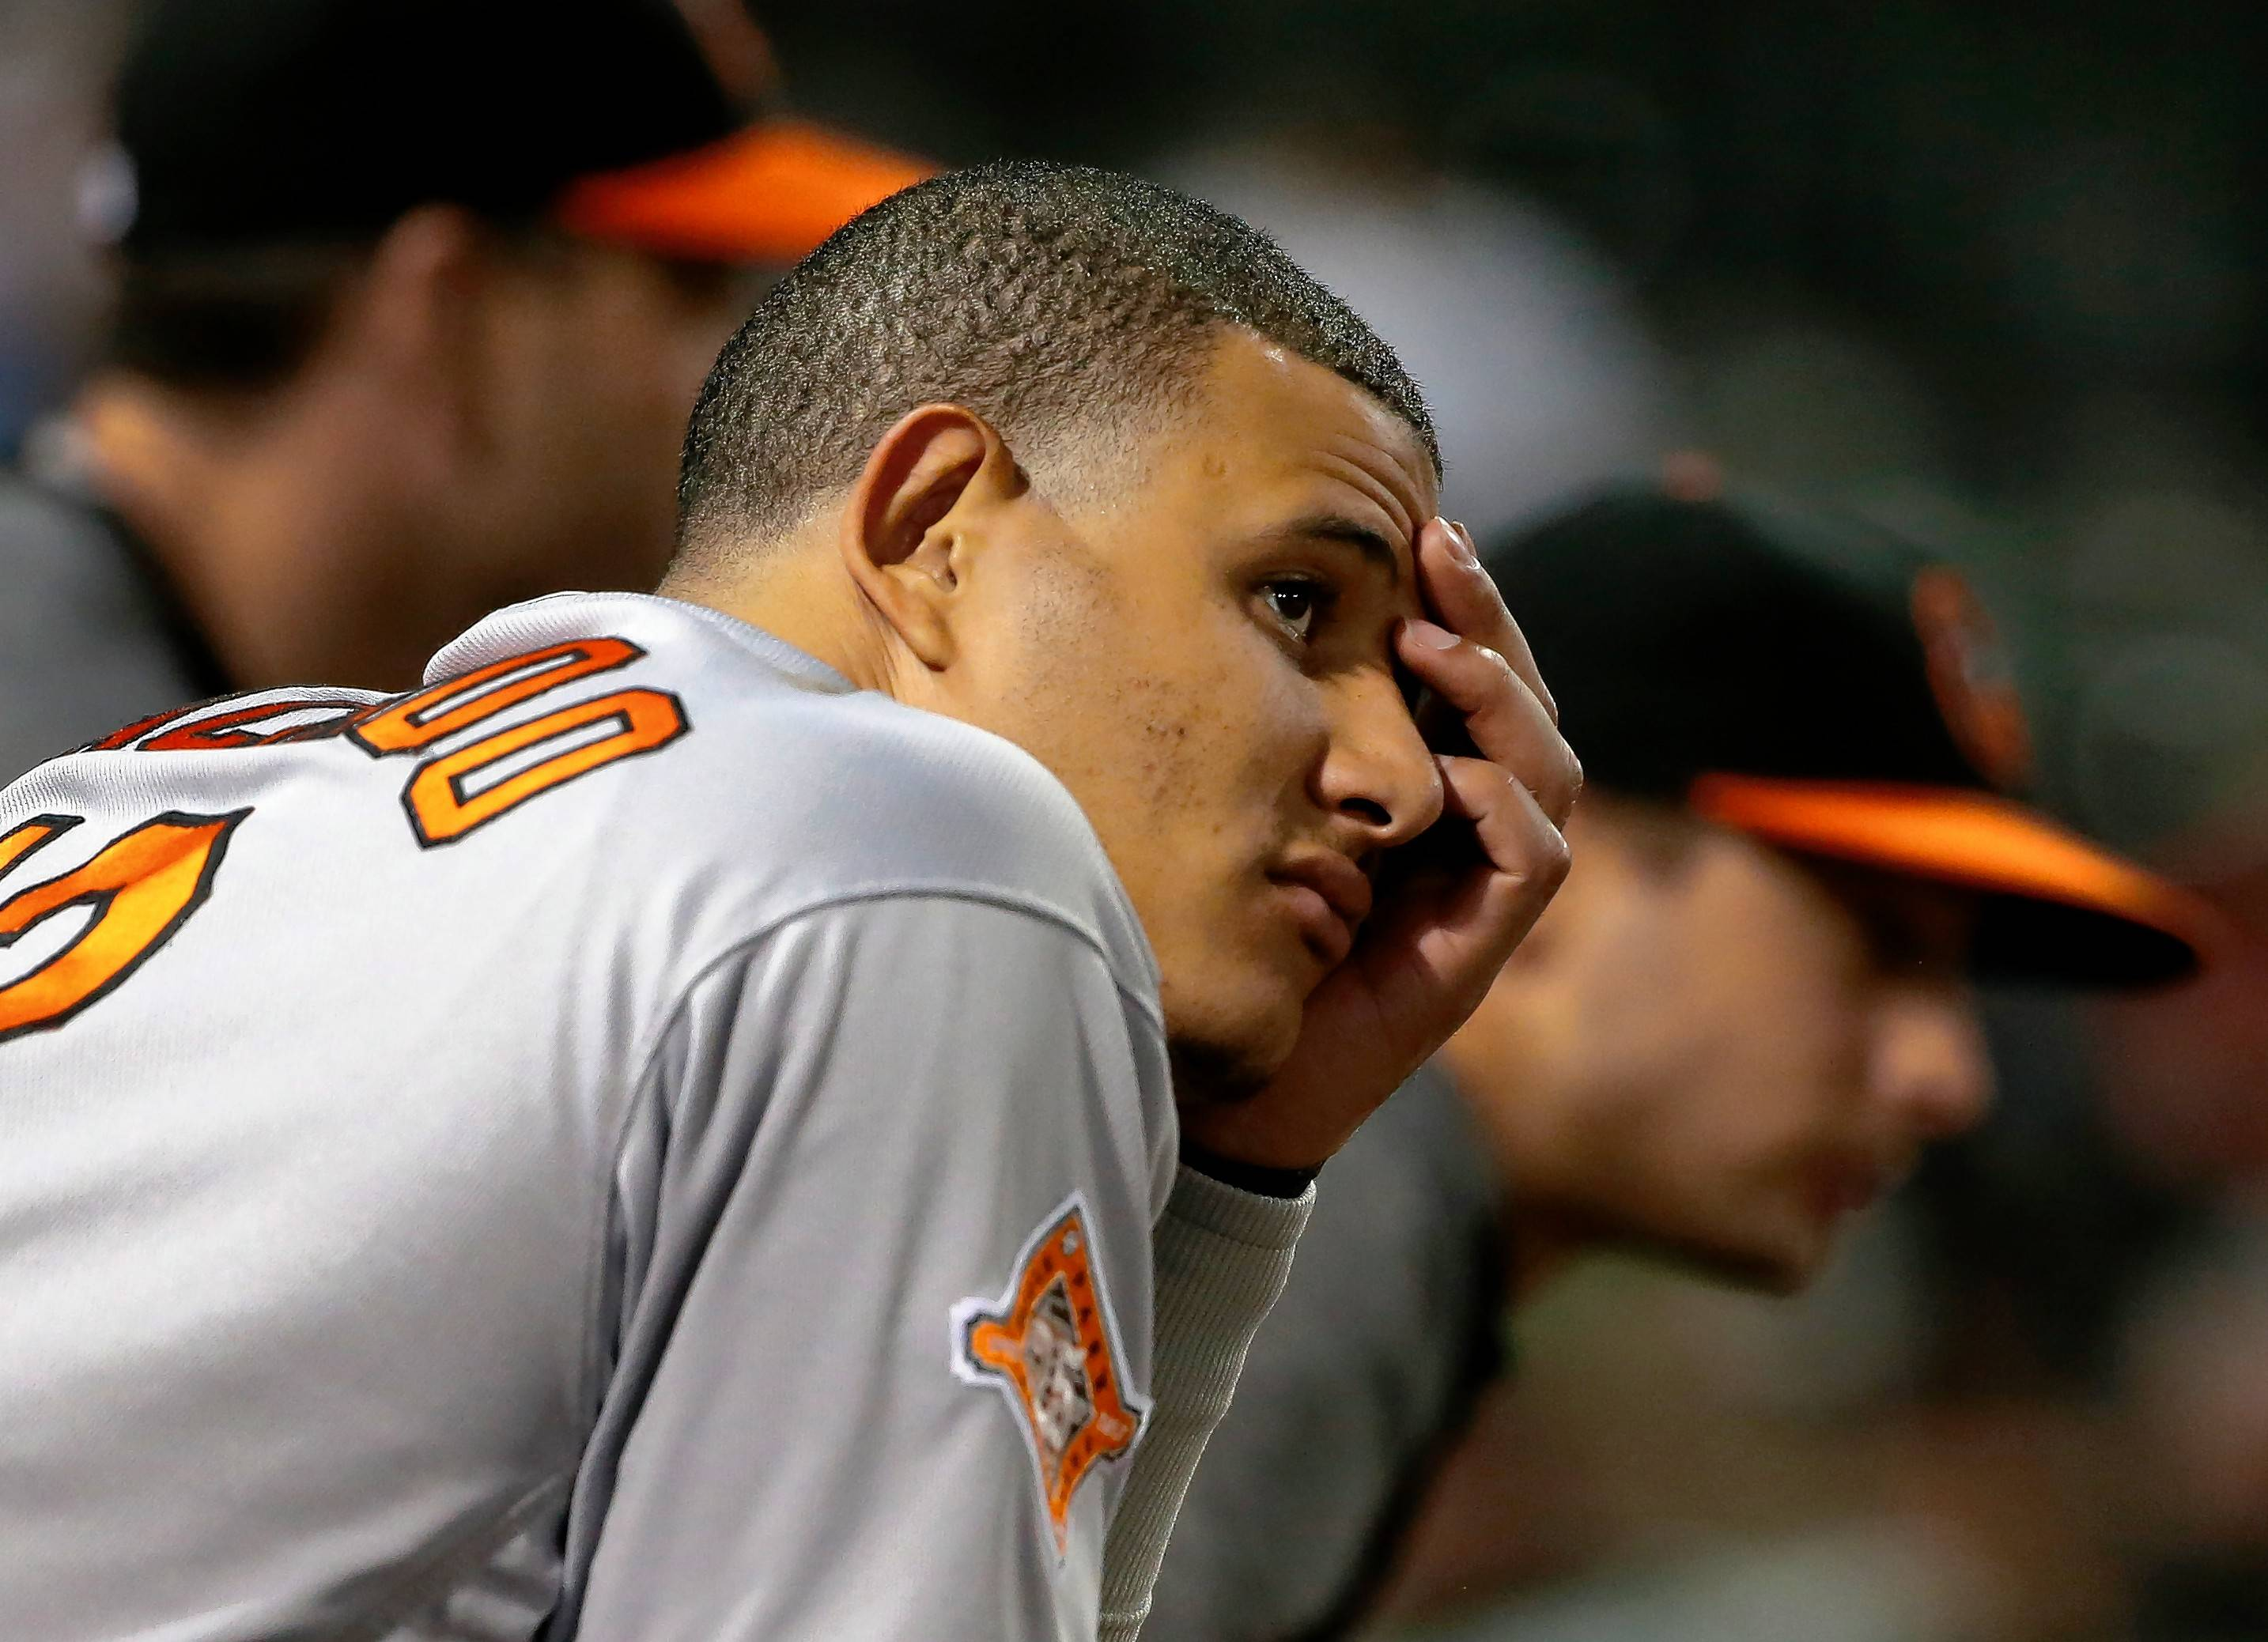 Baltimore Orioles third baseman Manny Machado, left, will become a free agent after the 2018 season, and the Orioles are considering trade offers for him.